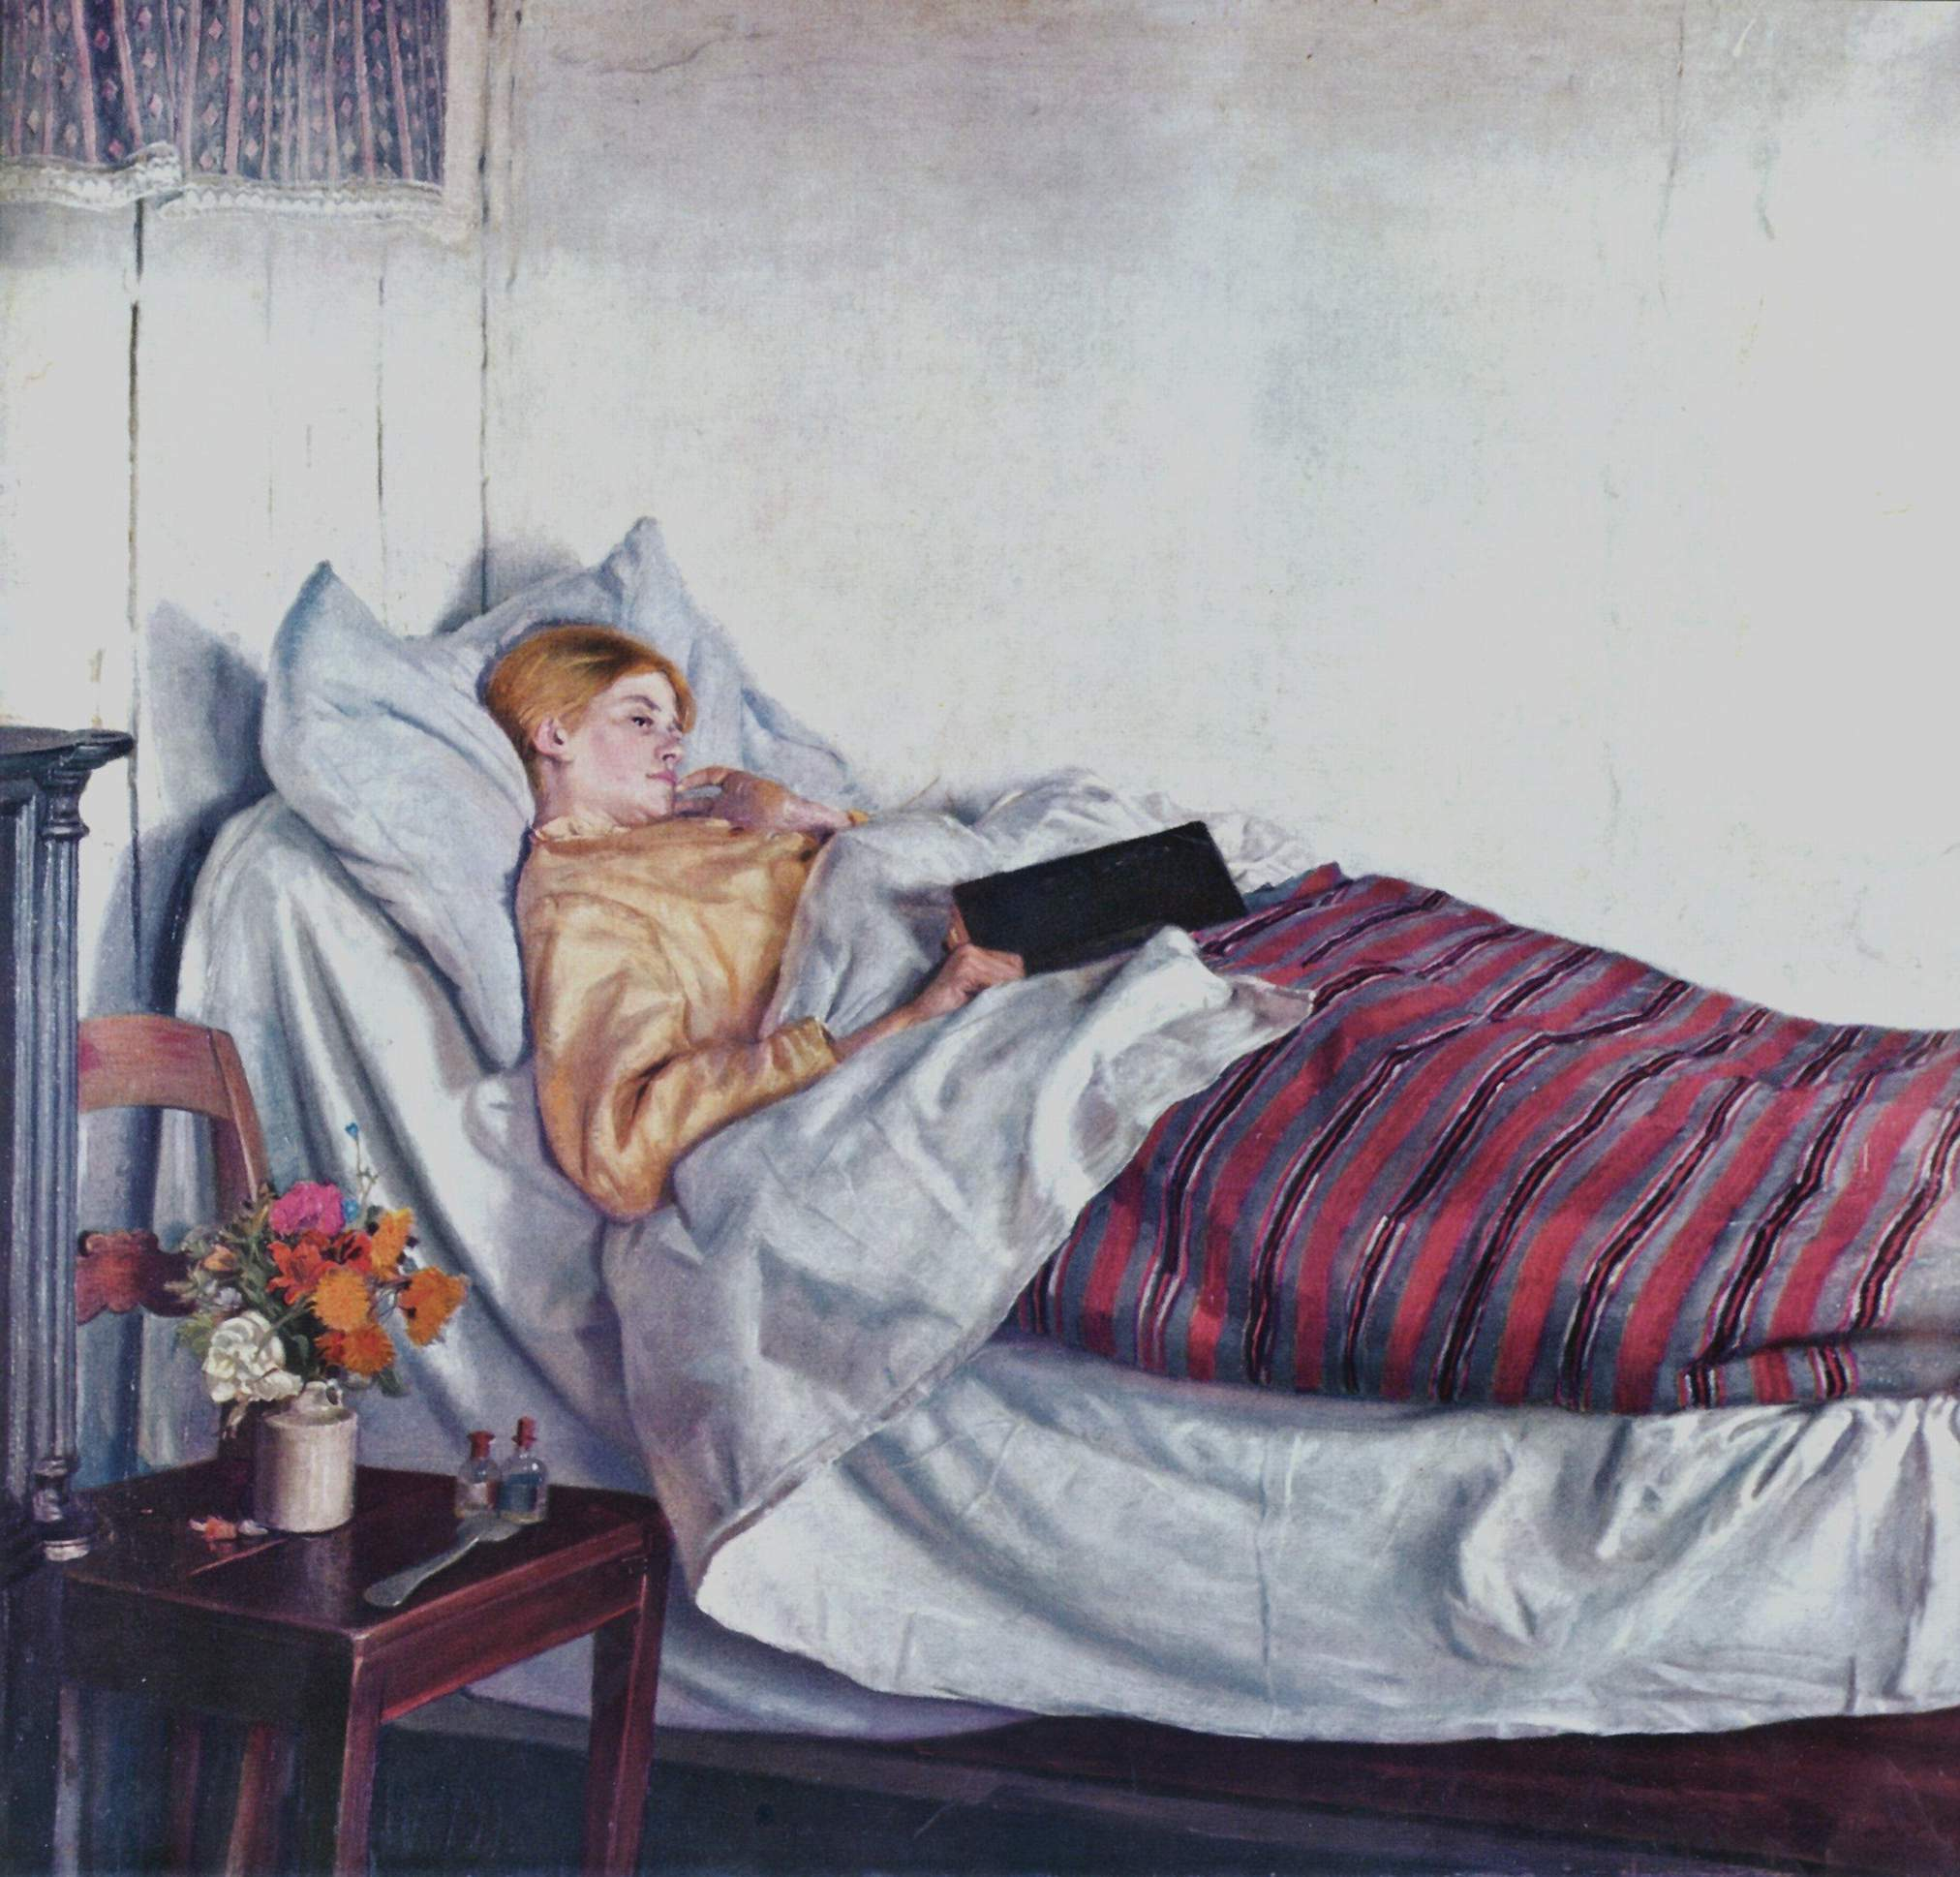 Woman sick in bed reading